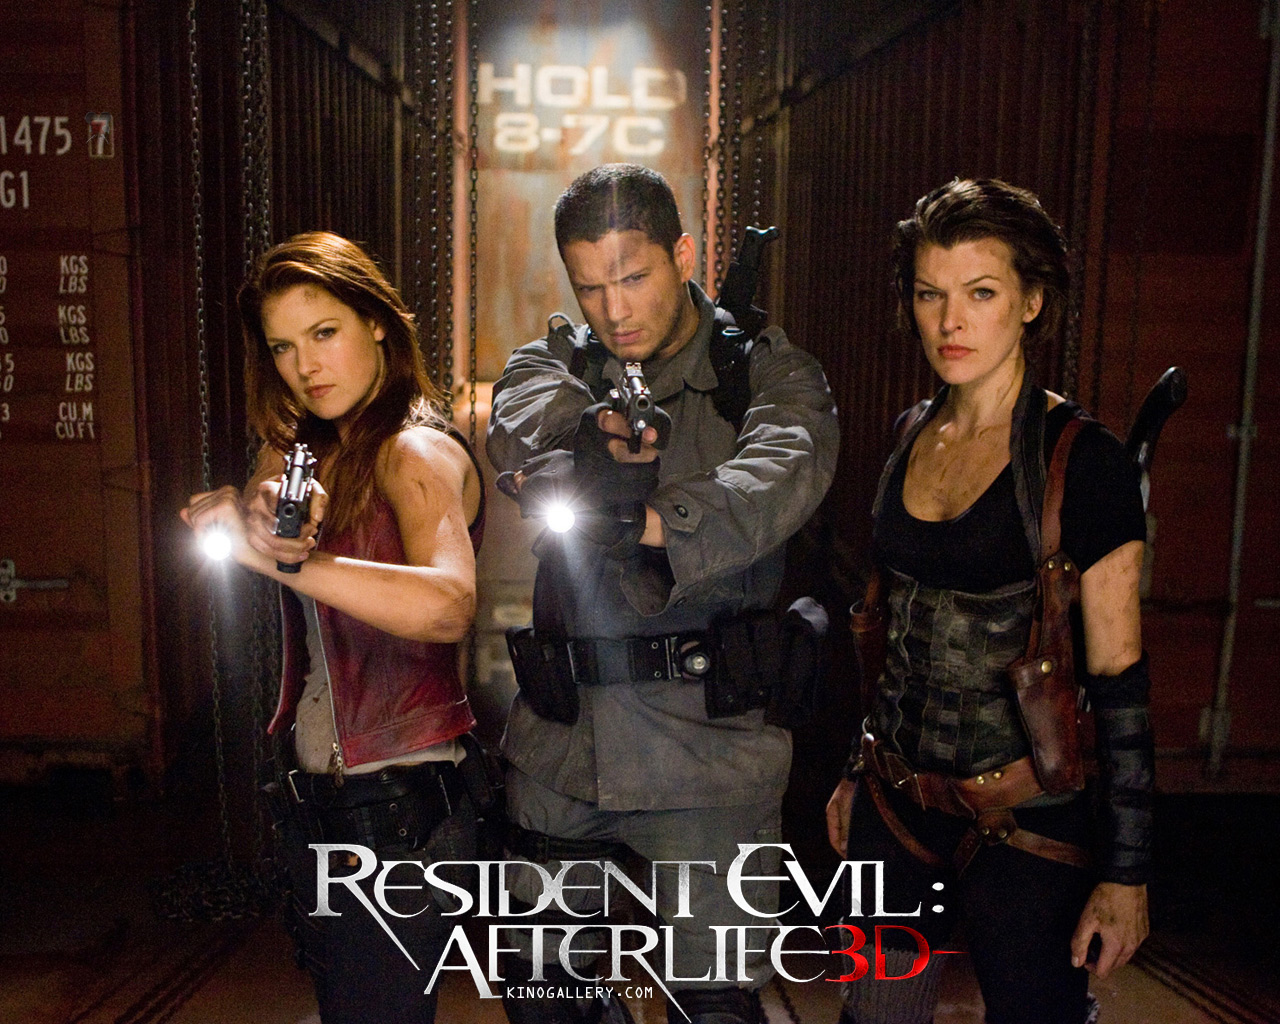 Pictures Resident Evil - Movies Resident Evil 4: Afterlife Milla Jovovich Movies film